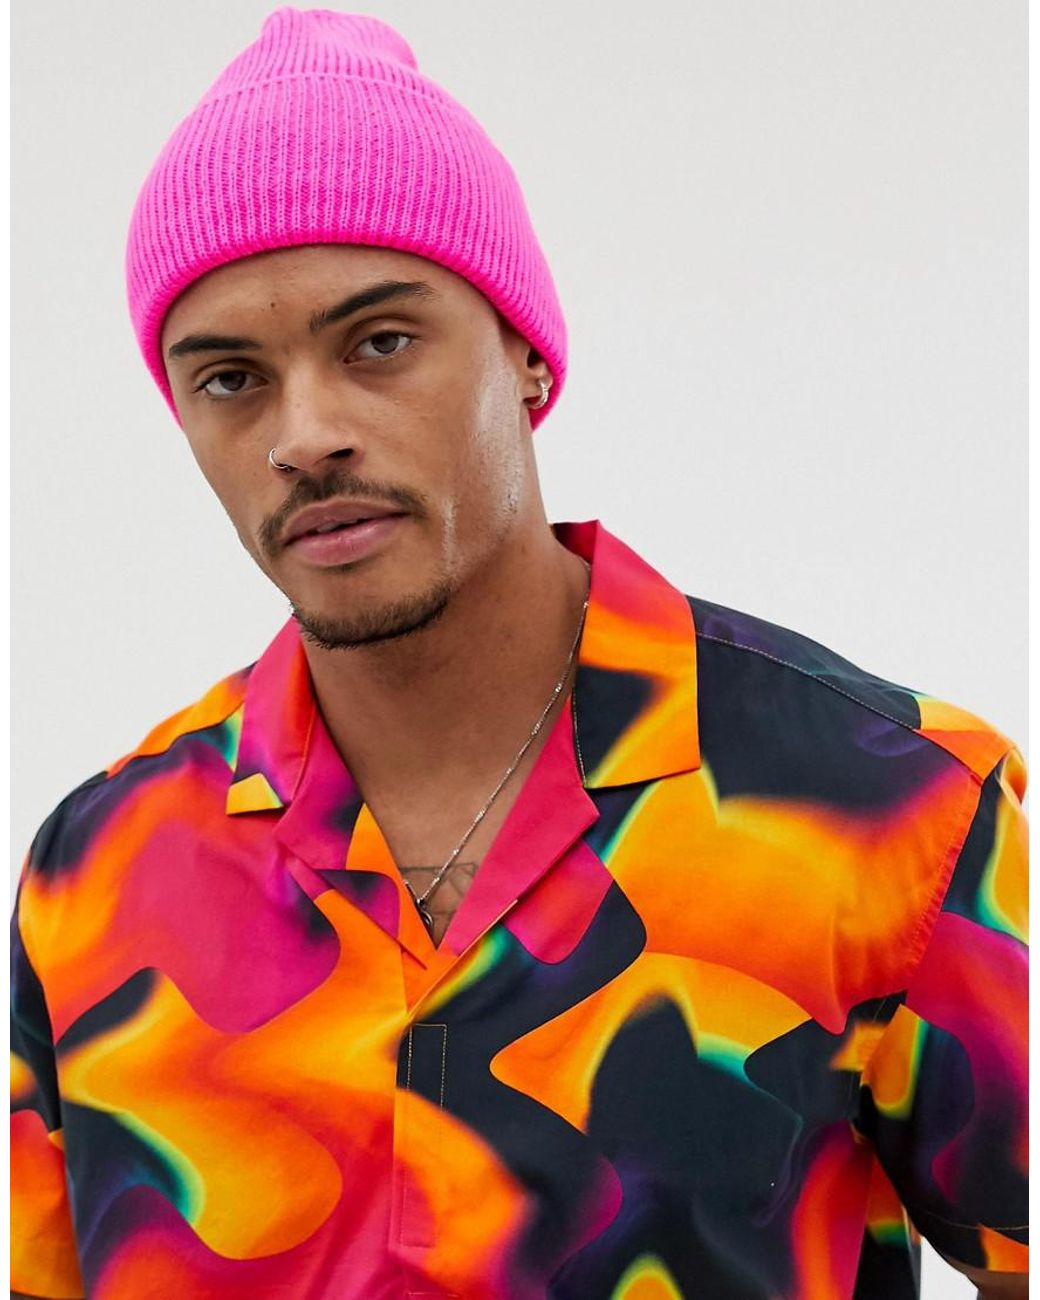 fad99647854 Lyst - ASOS Neon Pink Beanie in Pink for Men